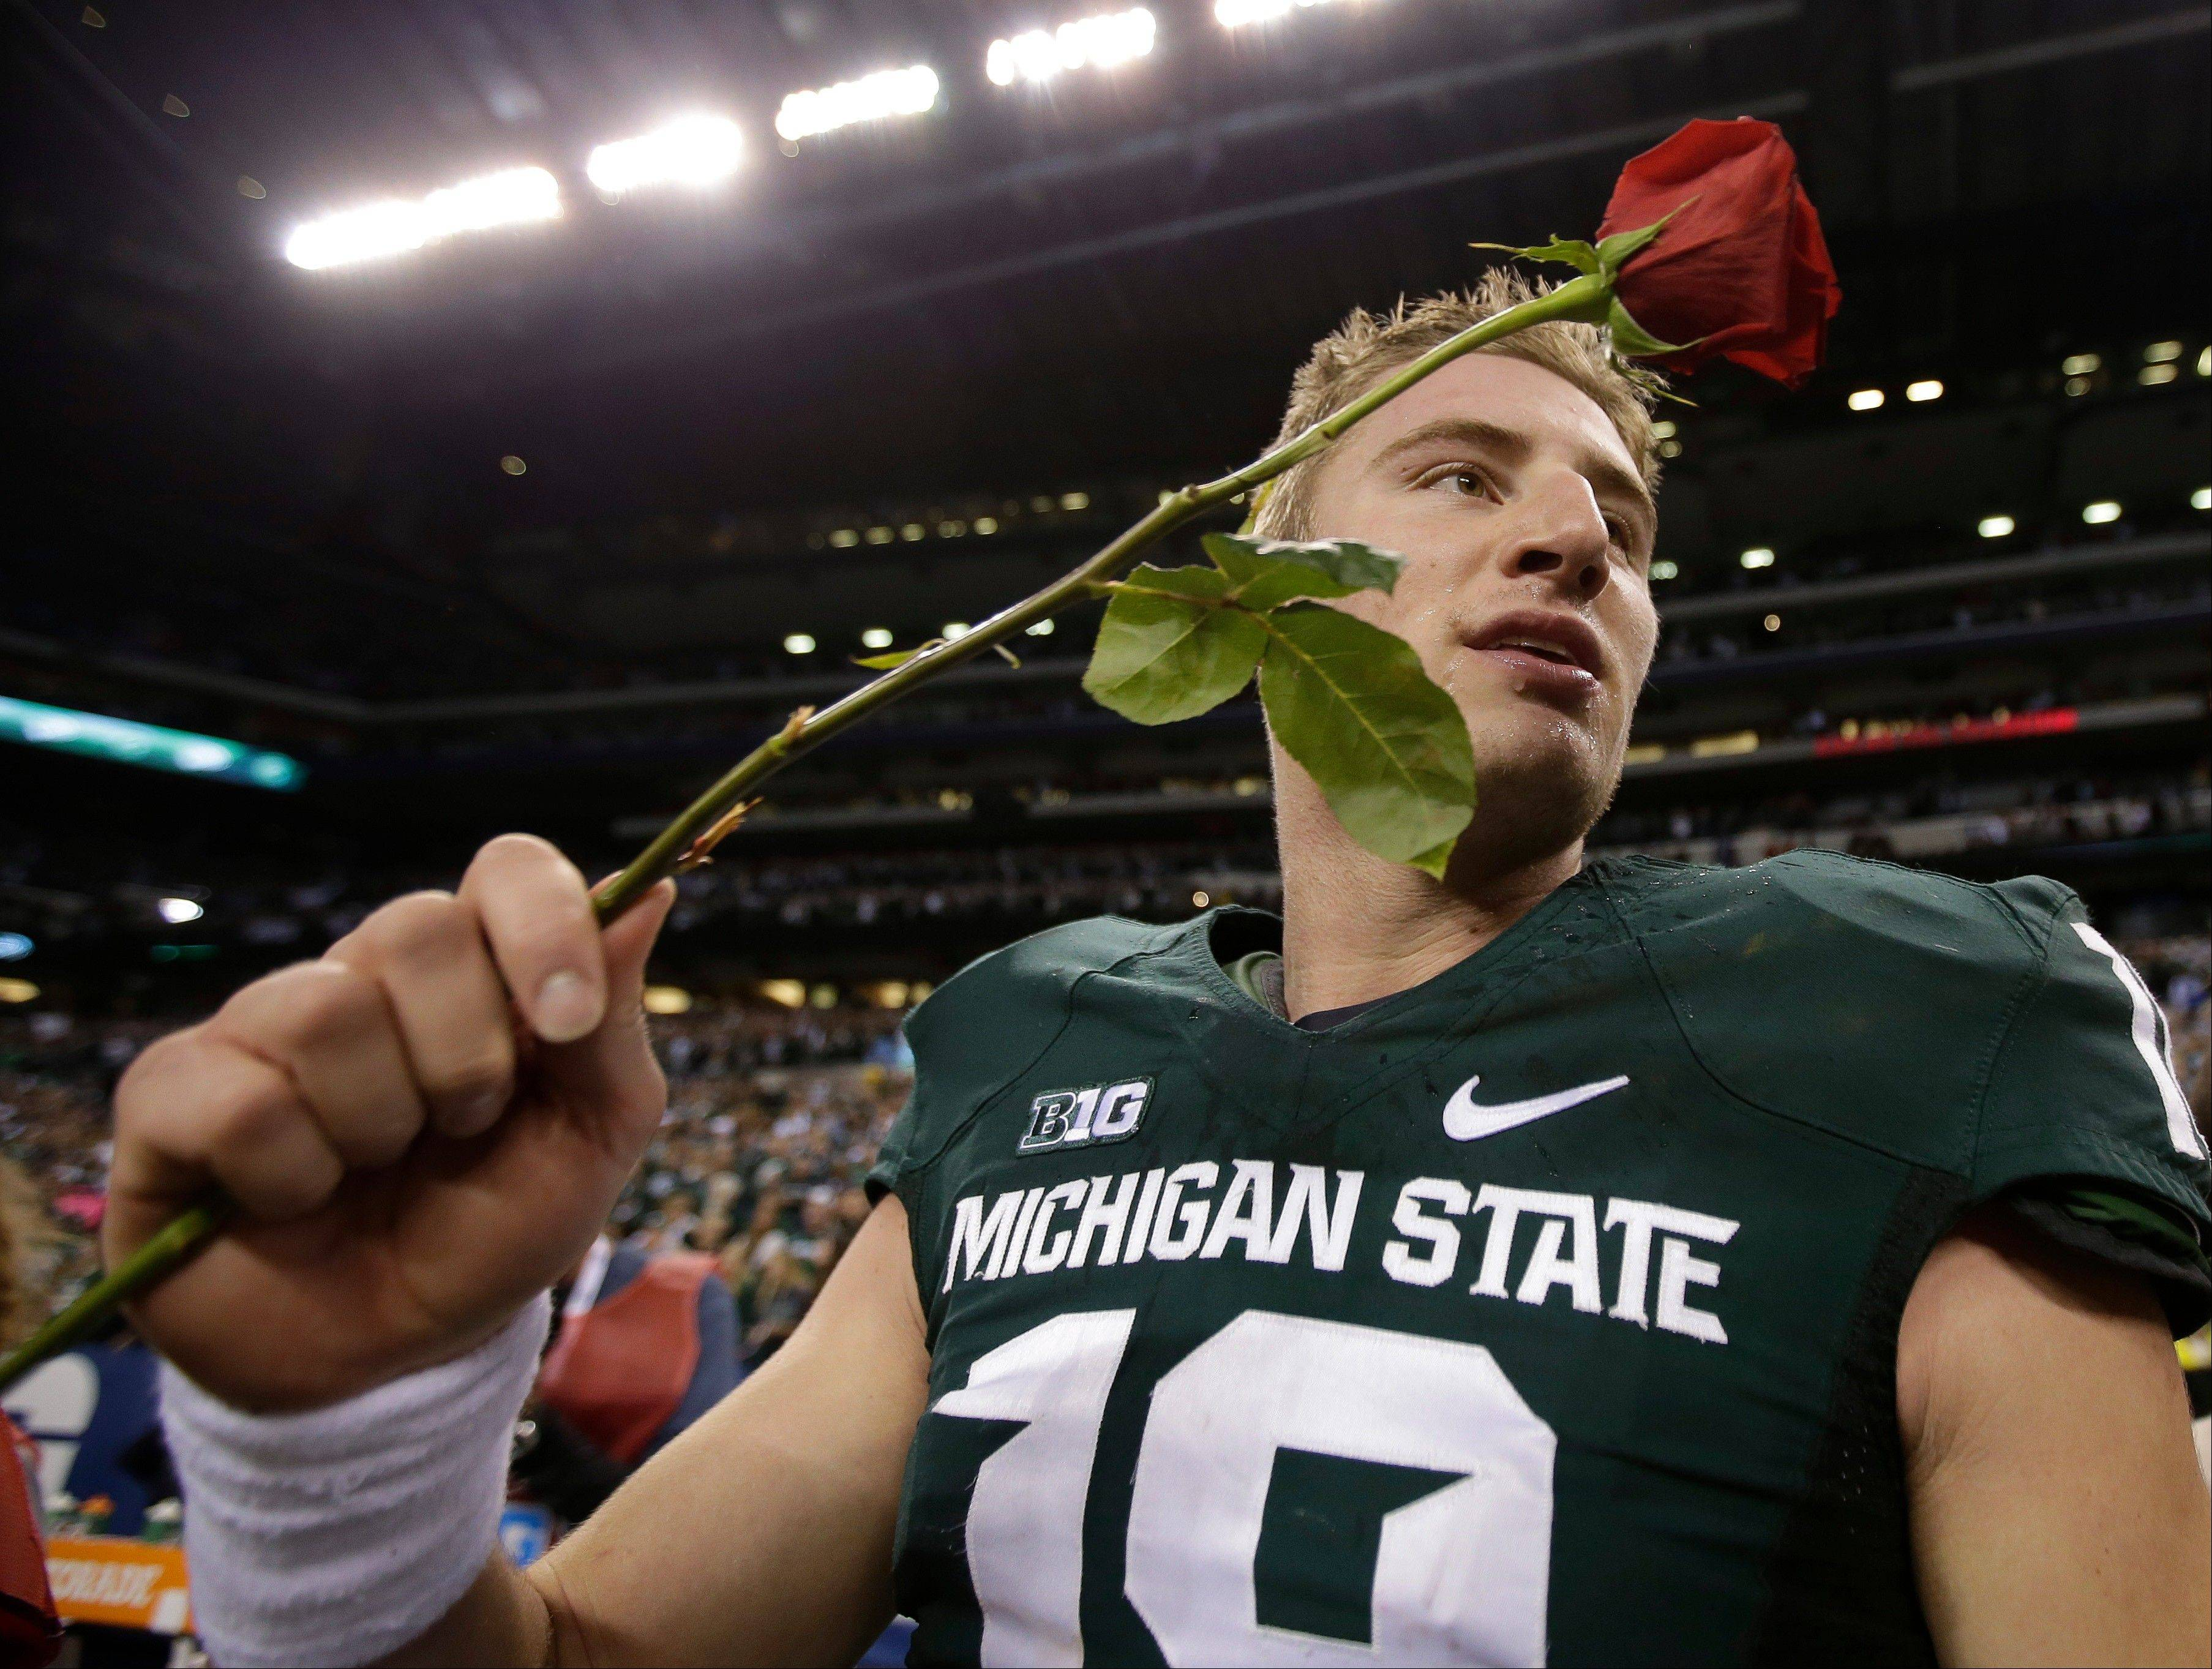 Michigan State's Connor Cook holds a rose after Michigan State defeated Ohio State, 34-24 in the Big Ten Conference championship NCAA college football game Saturday Dec. 7, 2013, in Indianapolis.